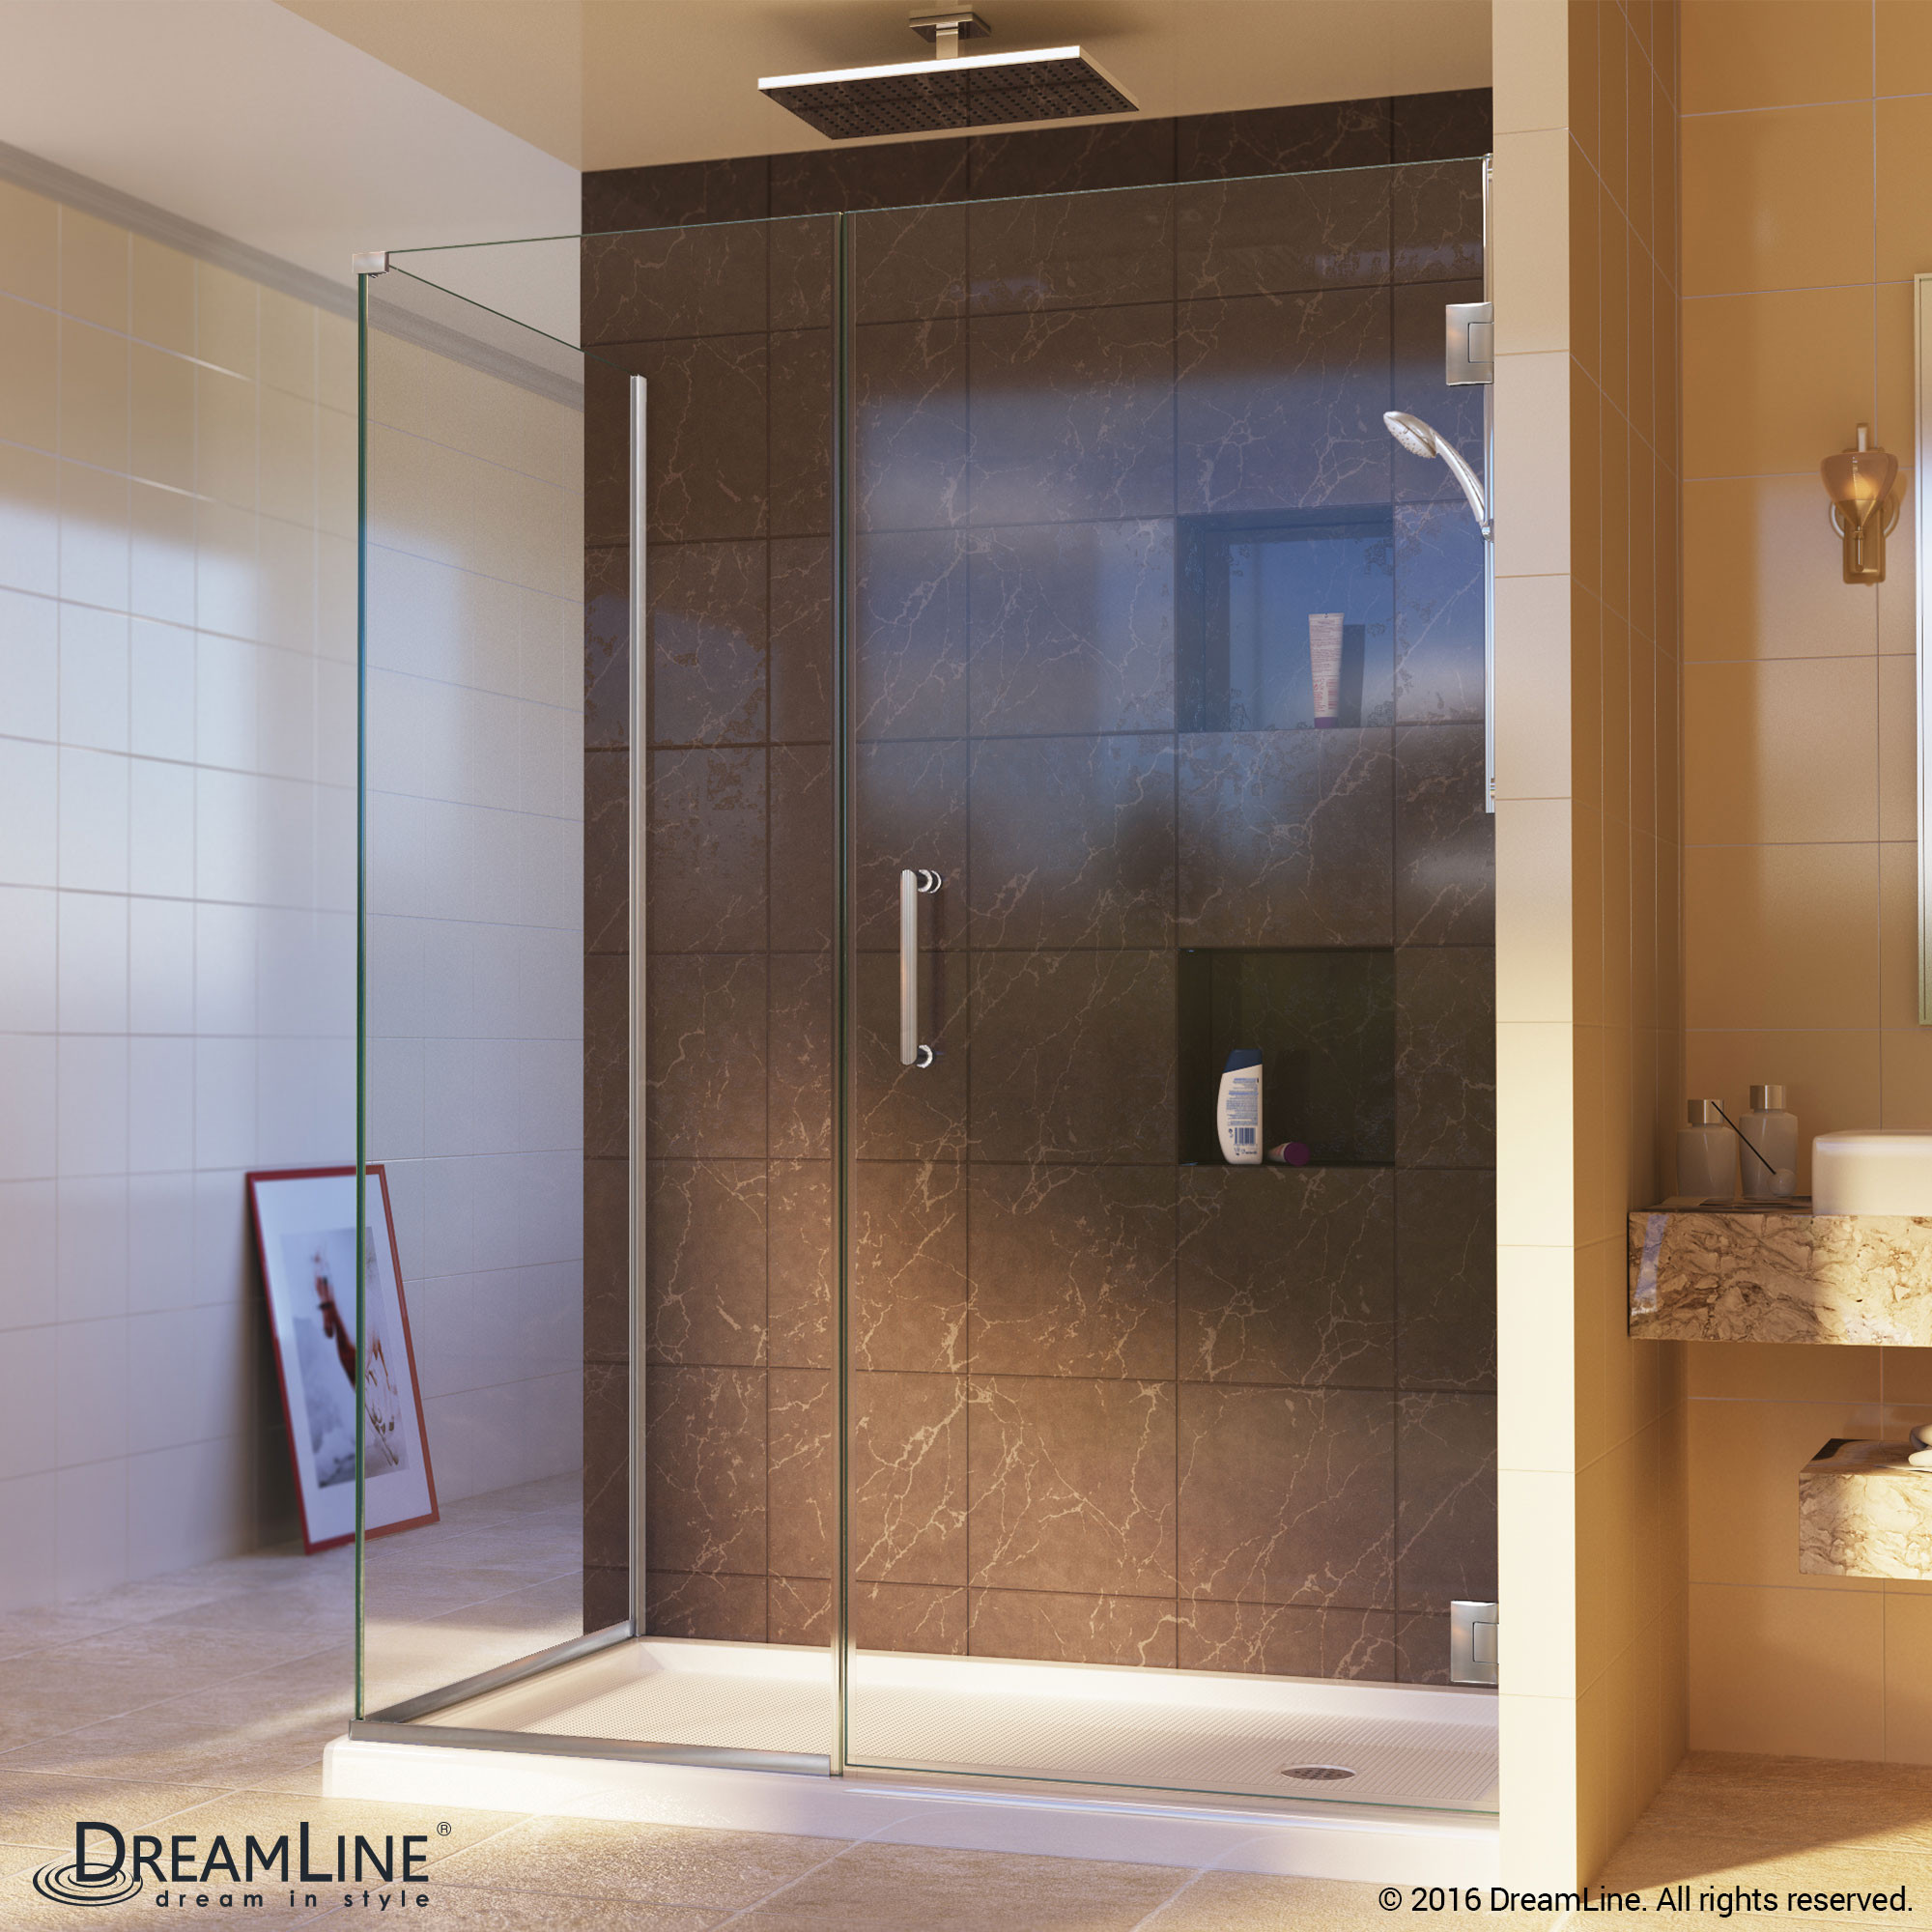 DreamLine SHEN-24370340-04 Unidoor Plus Hinged Shower Enclosure In Brushed Nickel Finish Hardware